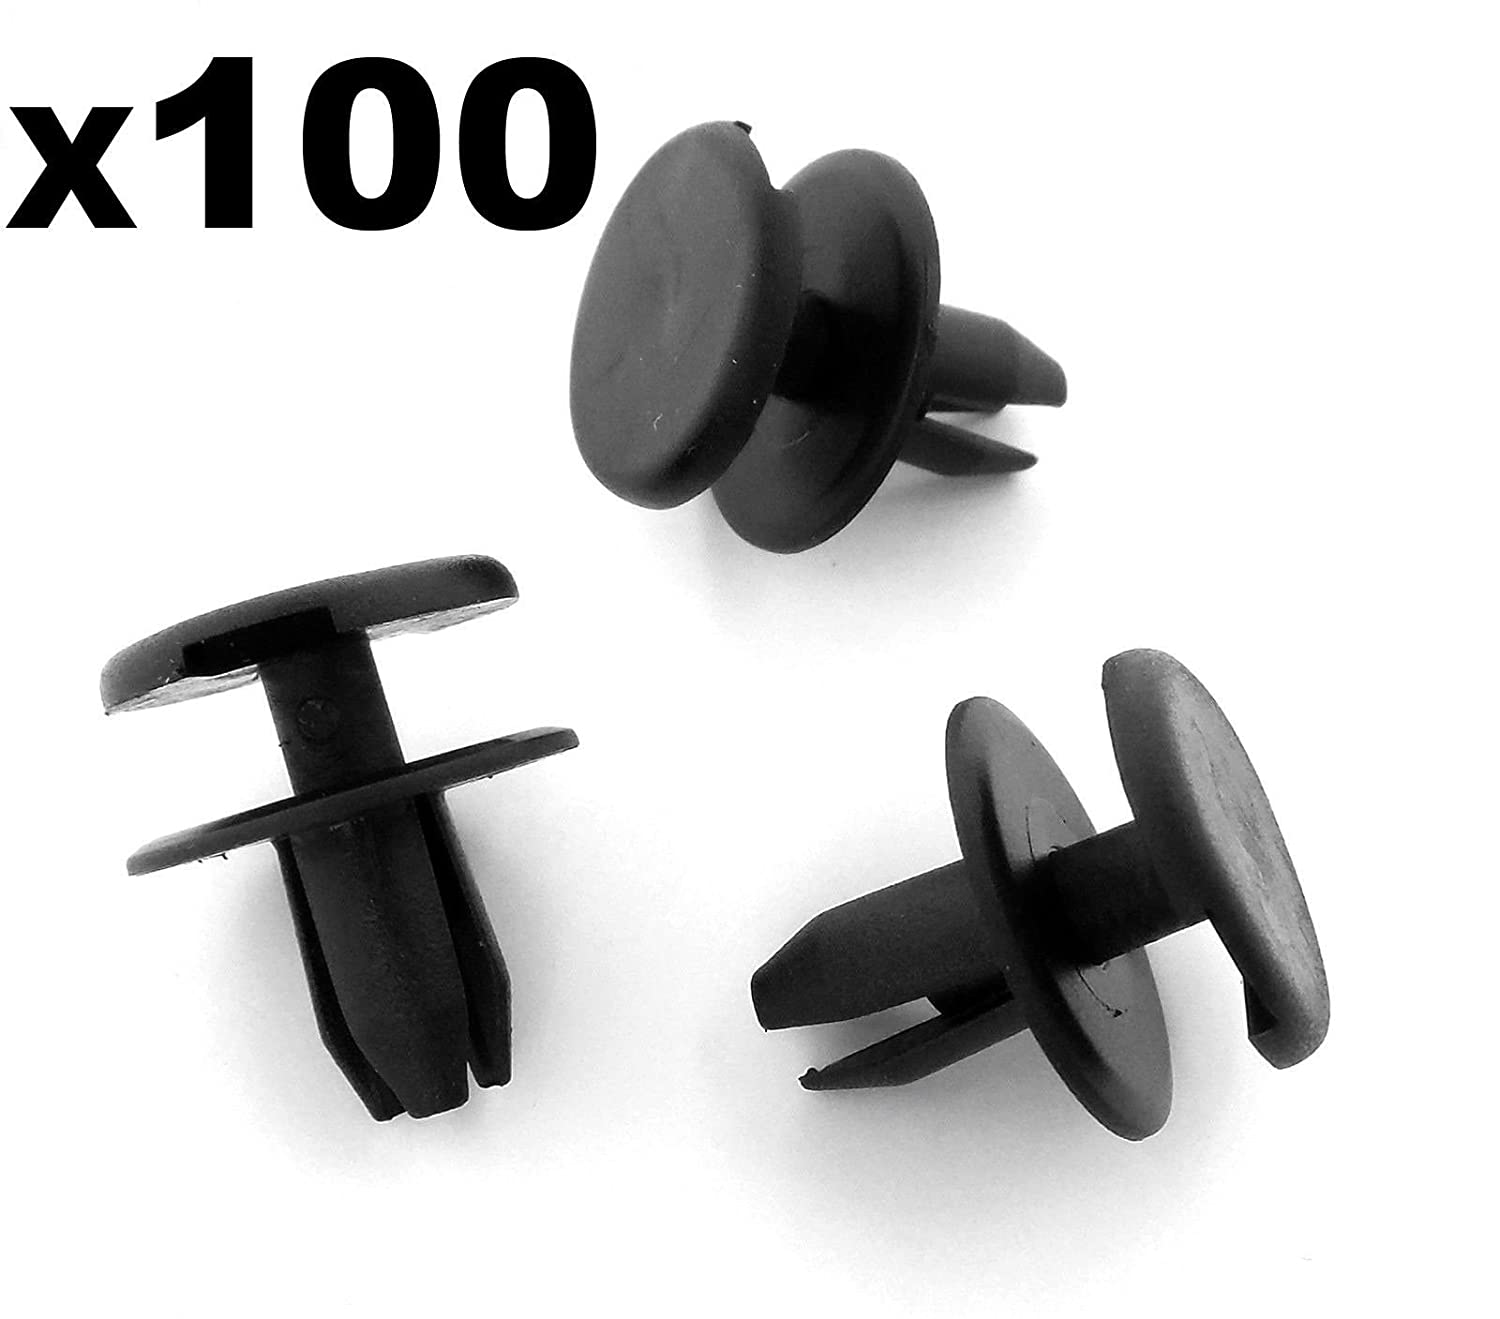 For Vauxhall Astra Signum Vectra Front Bumper Clips Plastic Rivets